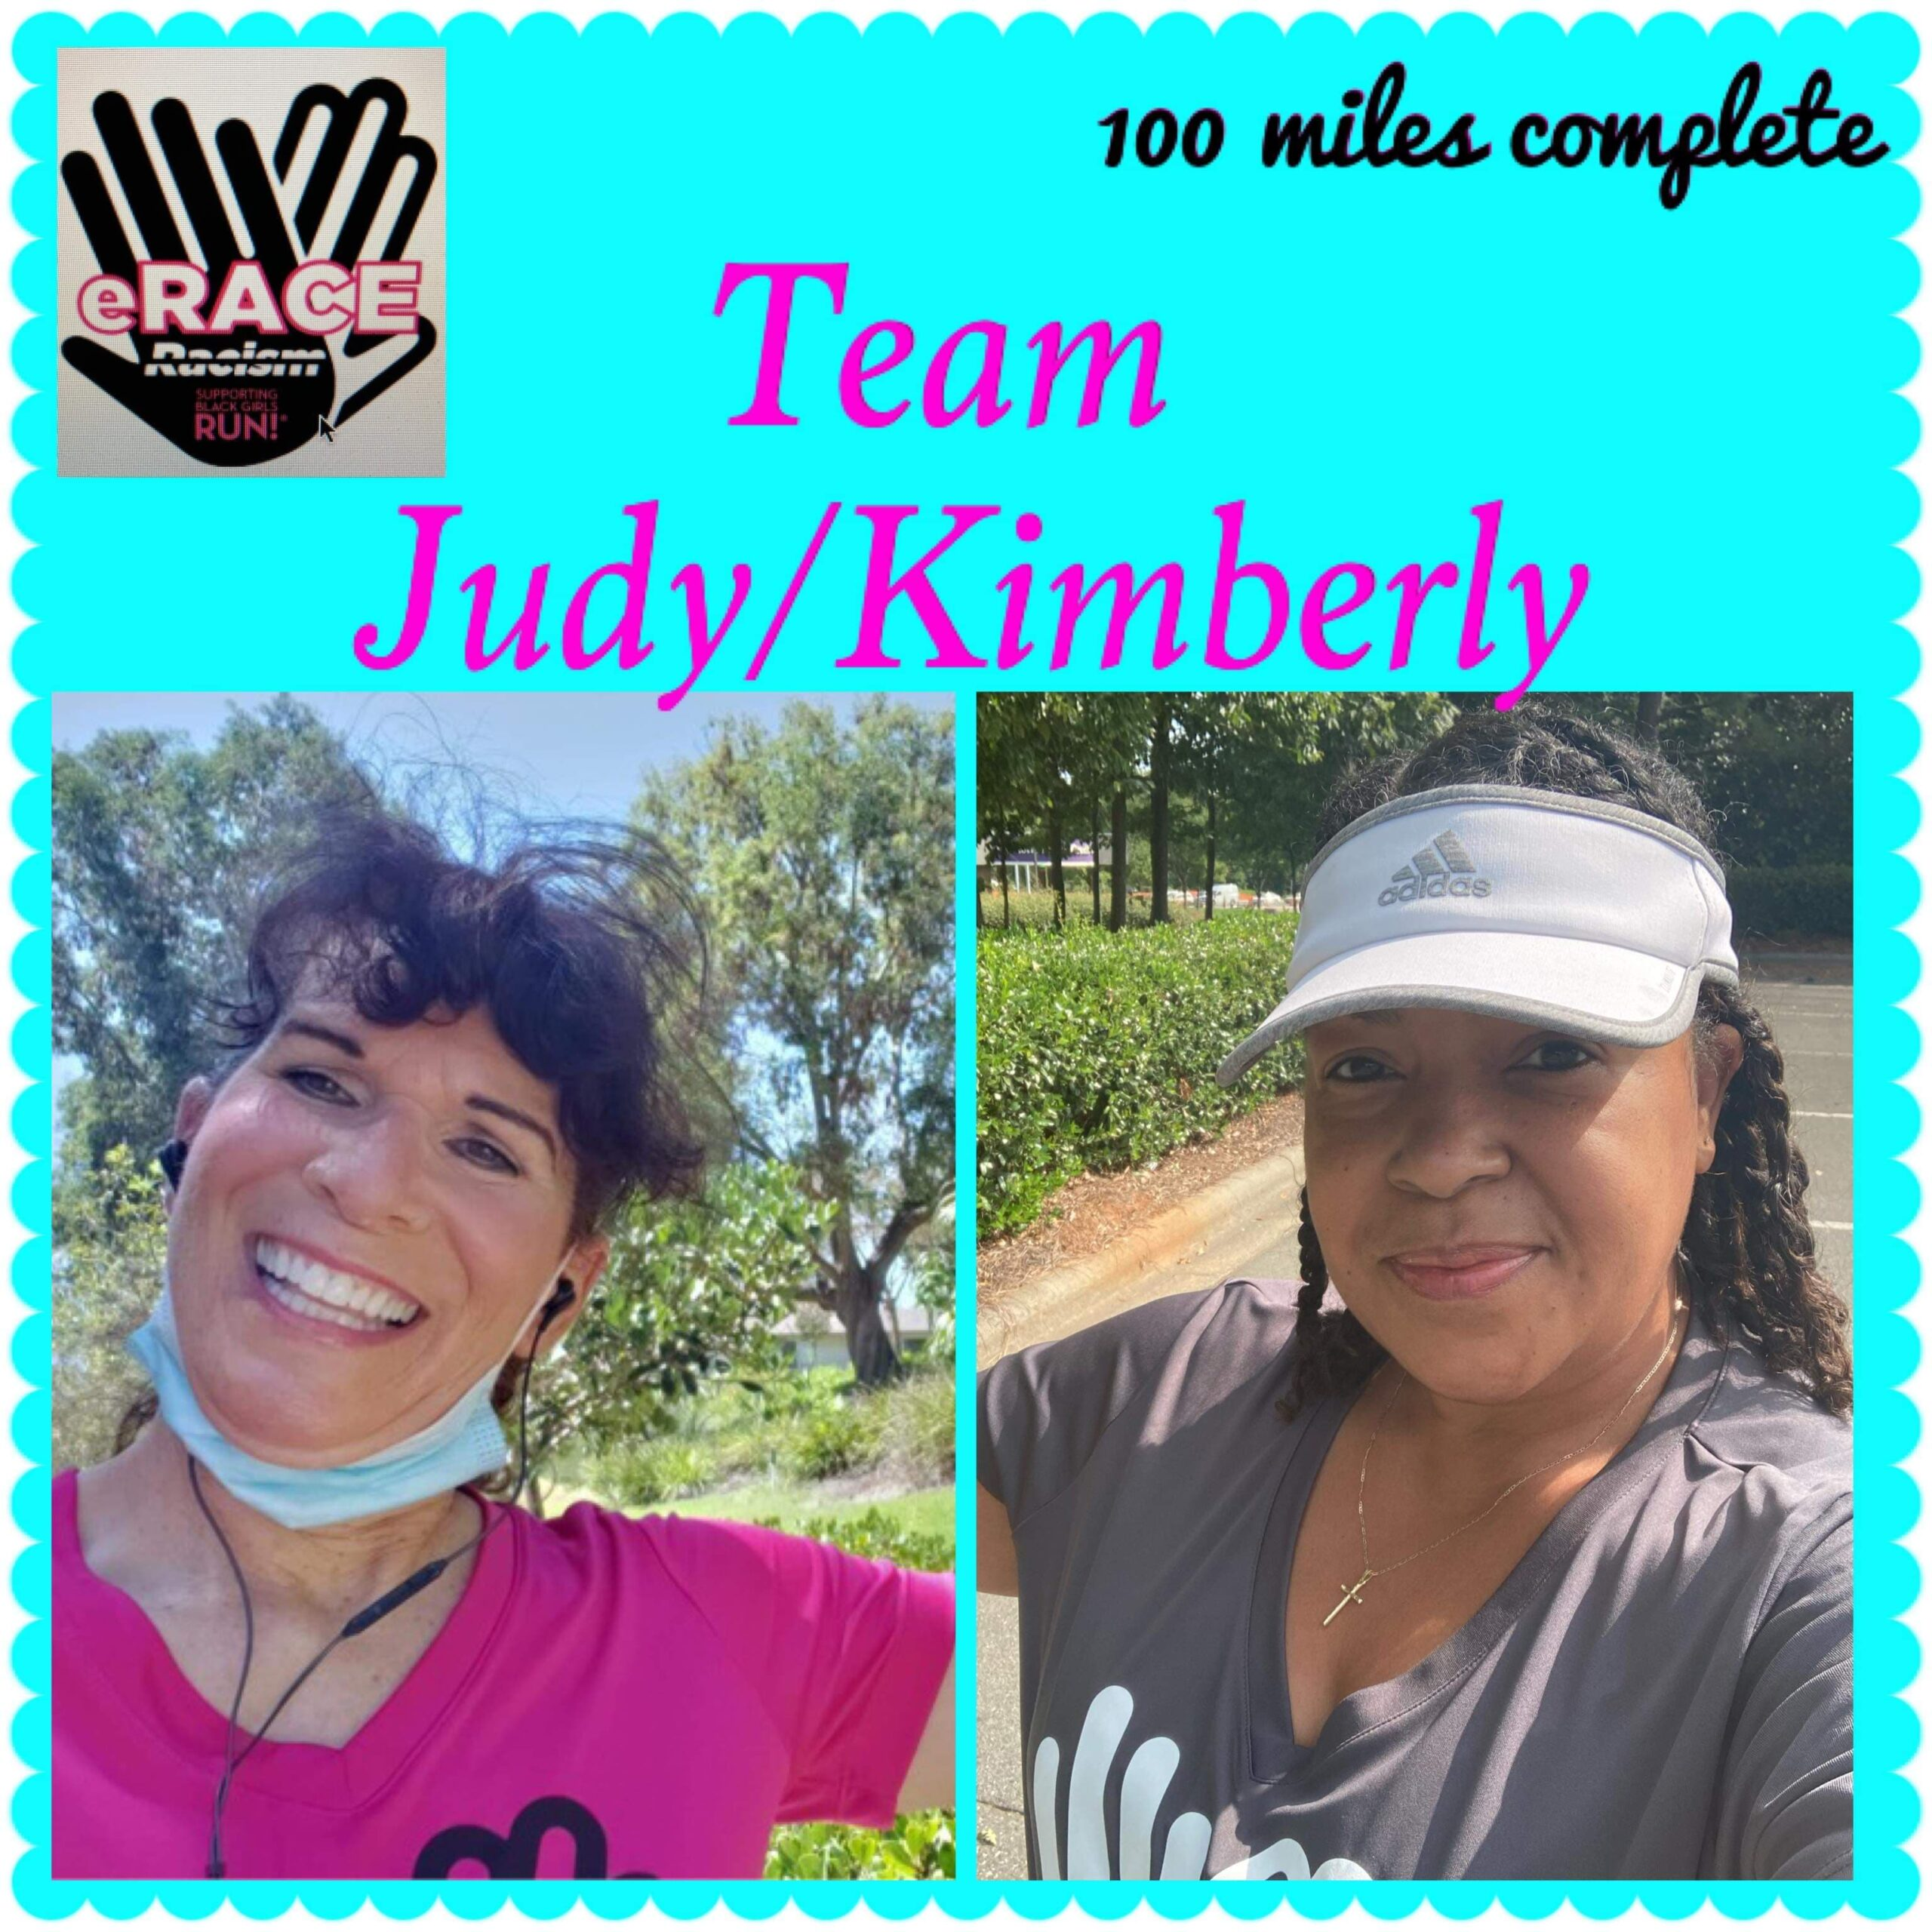 Photos of Judy and Kimberly